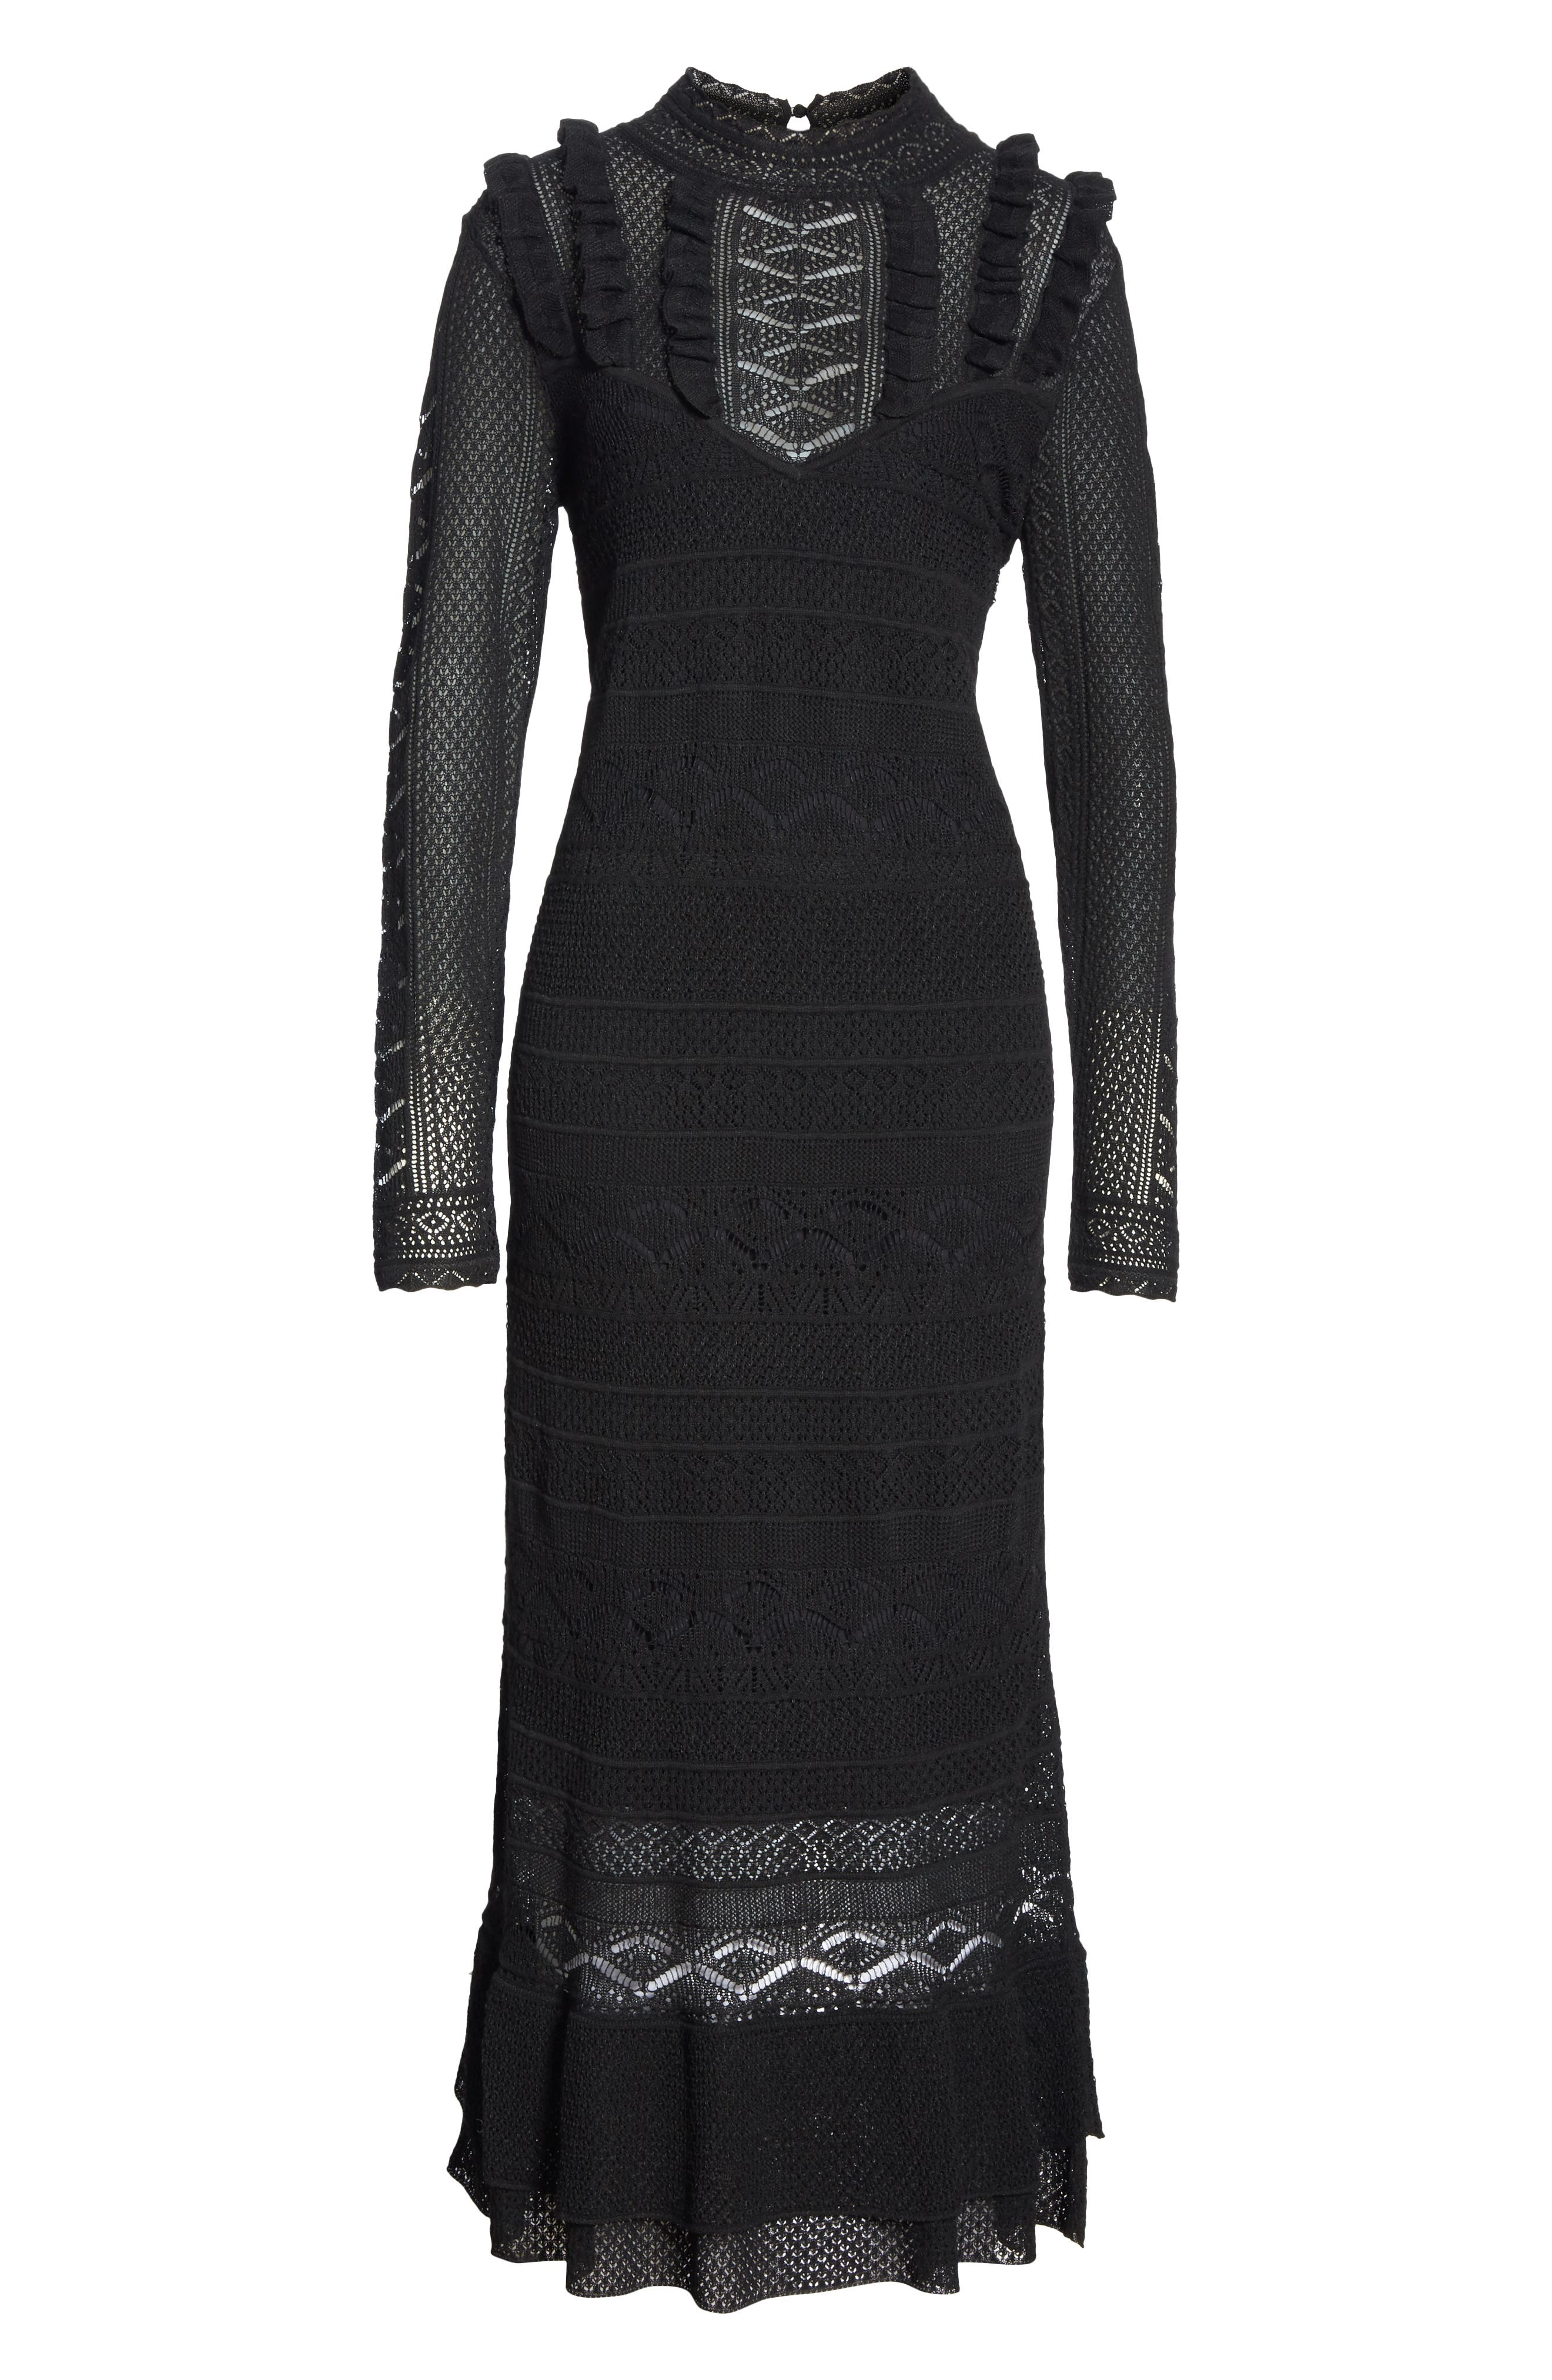 Pointelle Lace Midi Dress,                             Alternate thumbnail 6, color,                             001